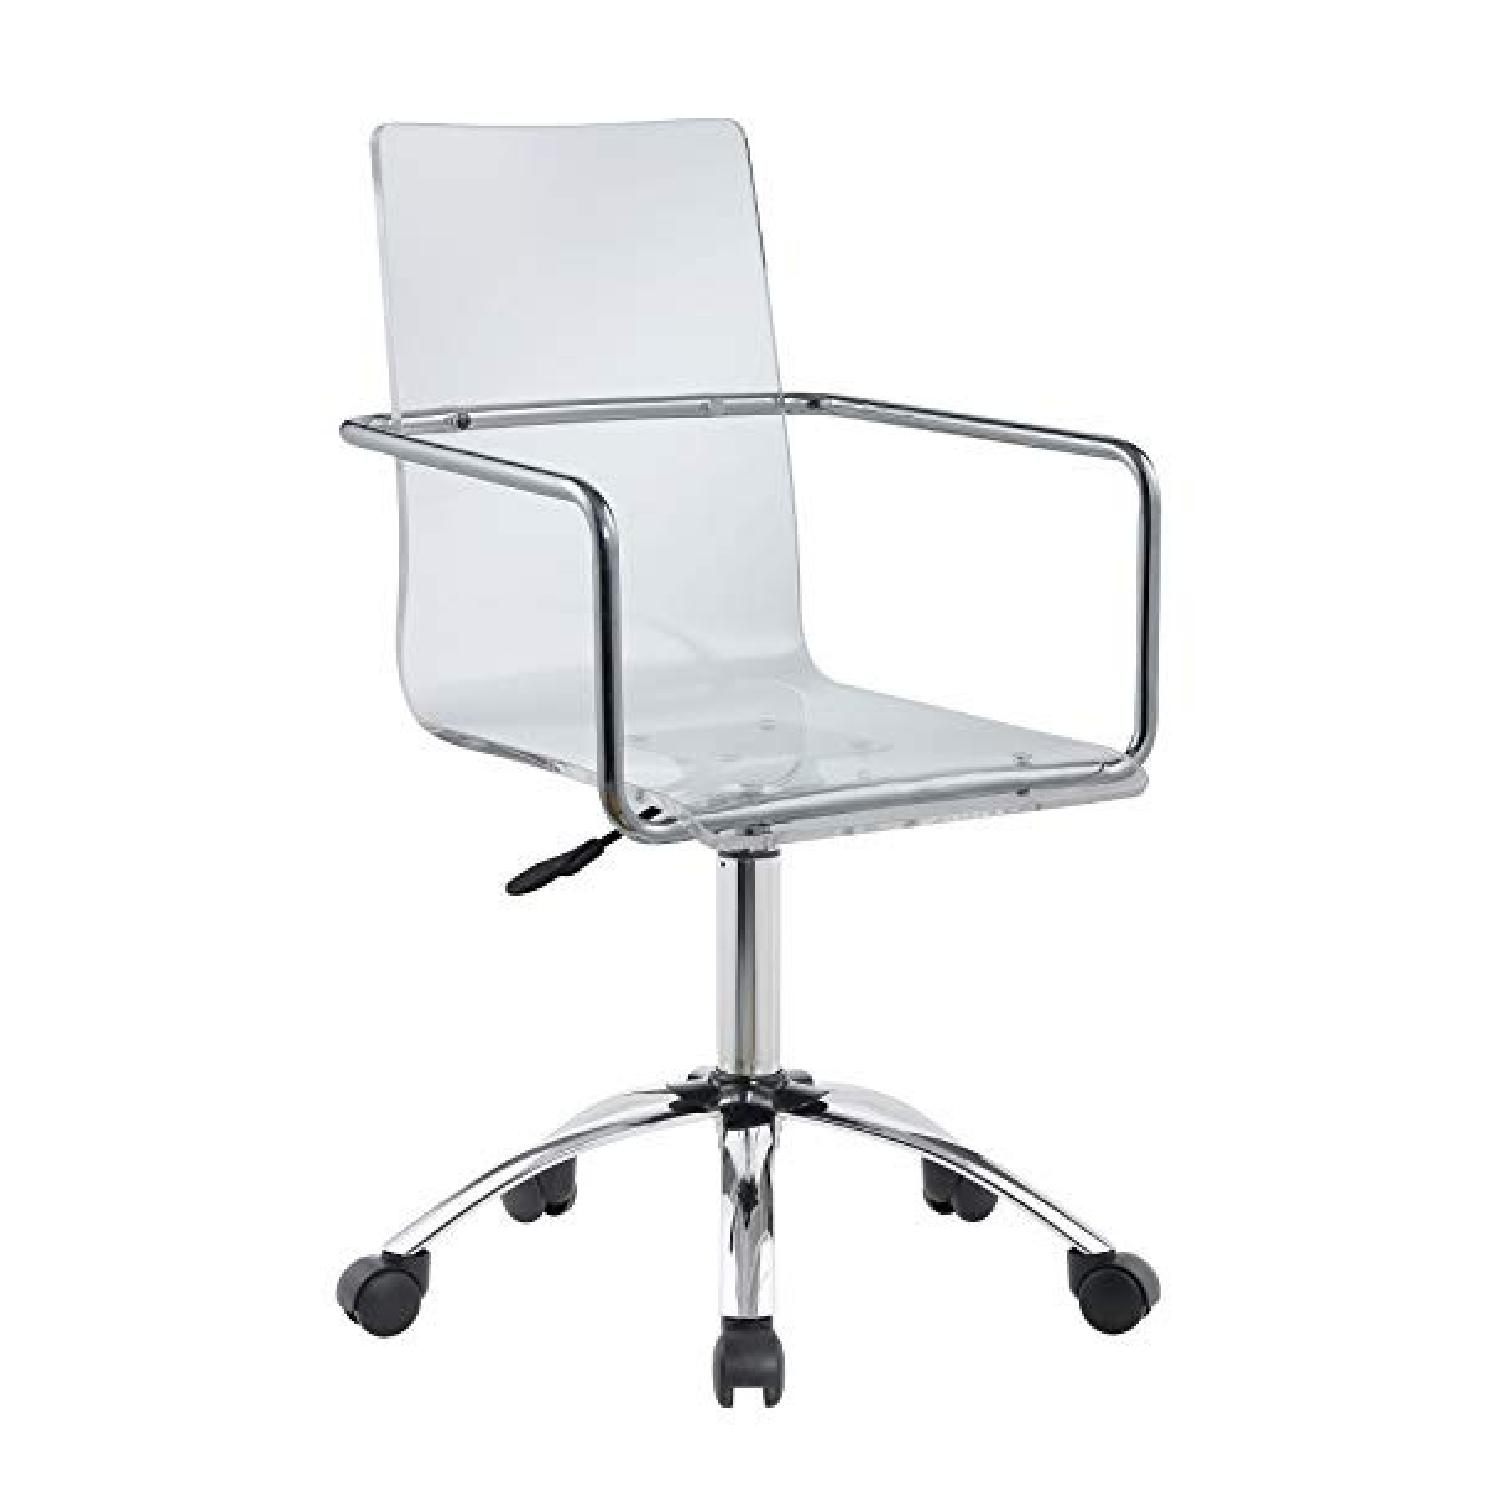 Clear Acrylic Office Chair - image-0